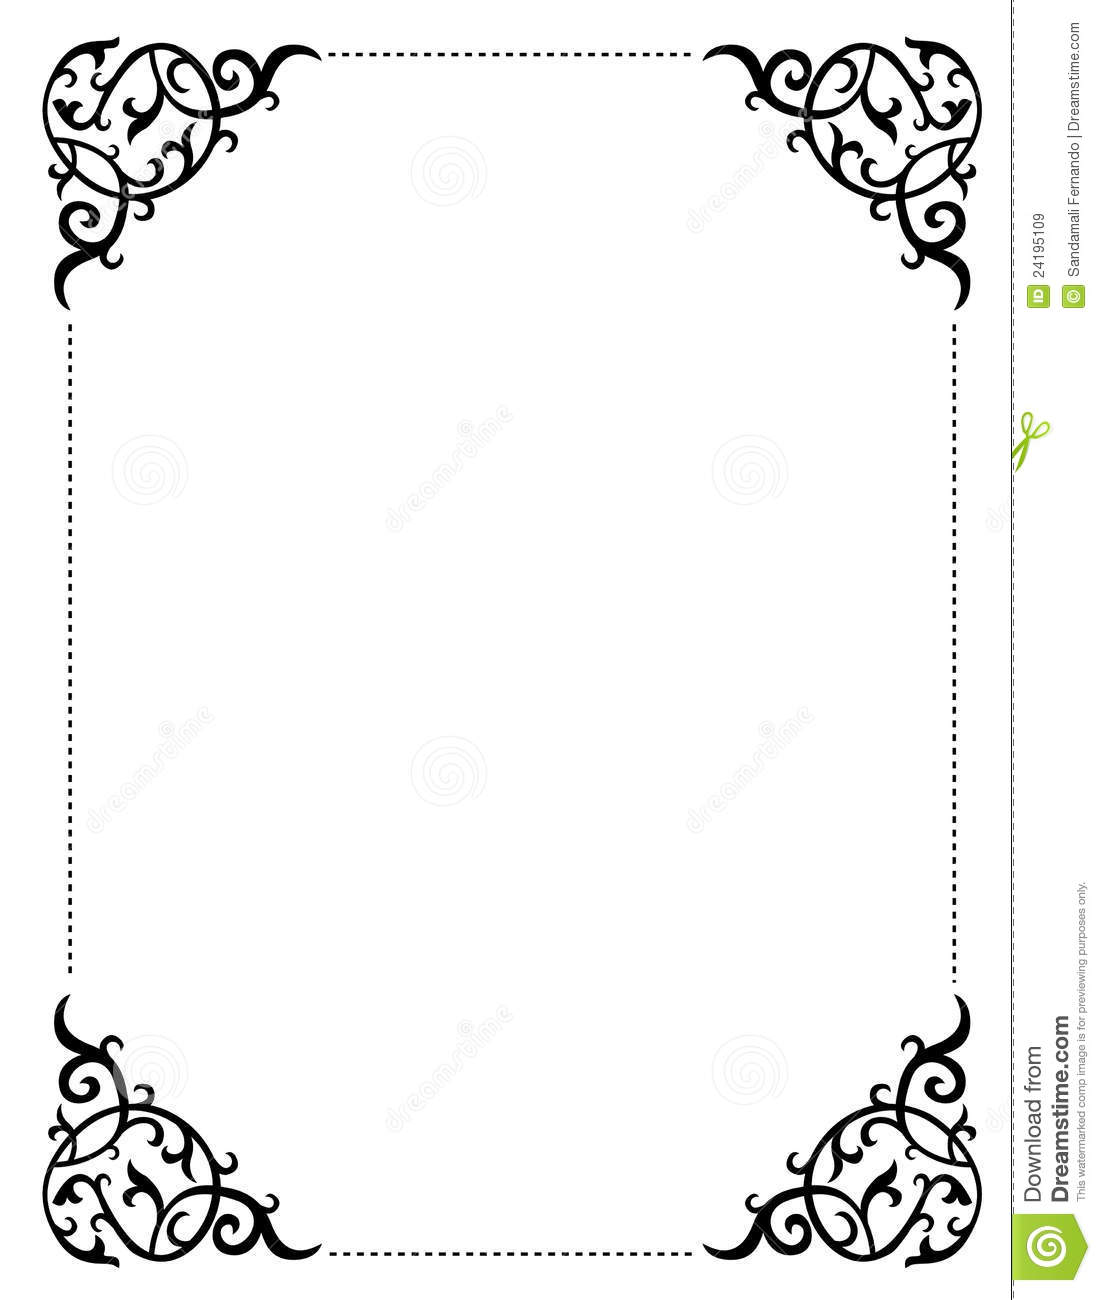 7 Images of Free Printable Clip Art Frames